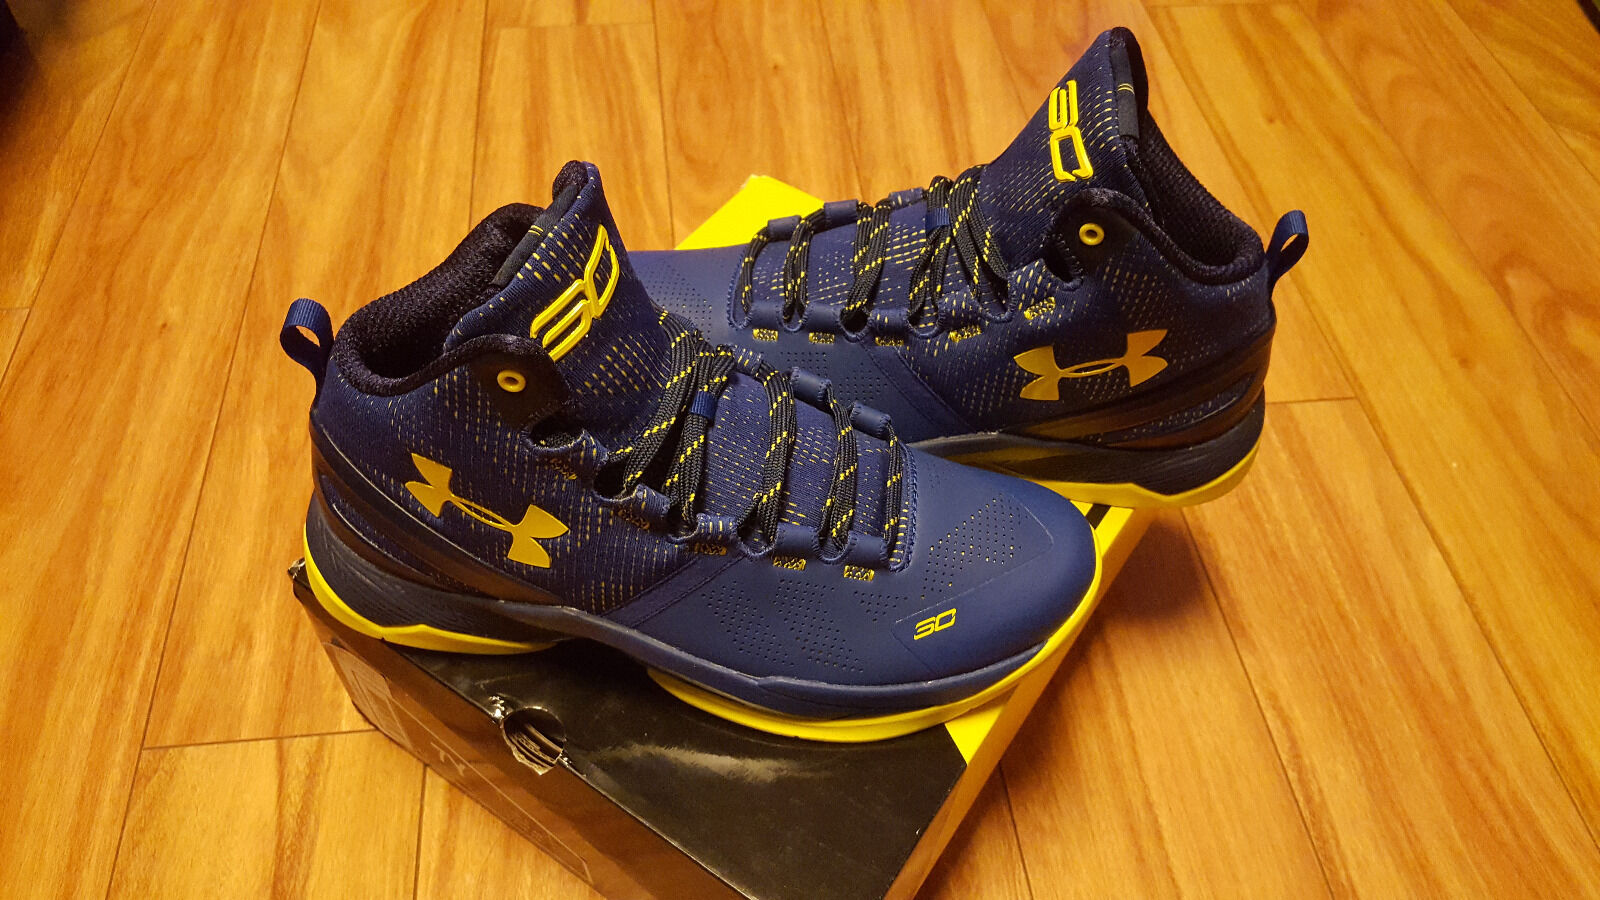 Under Armour Curry 2 Taxi Royal Blue